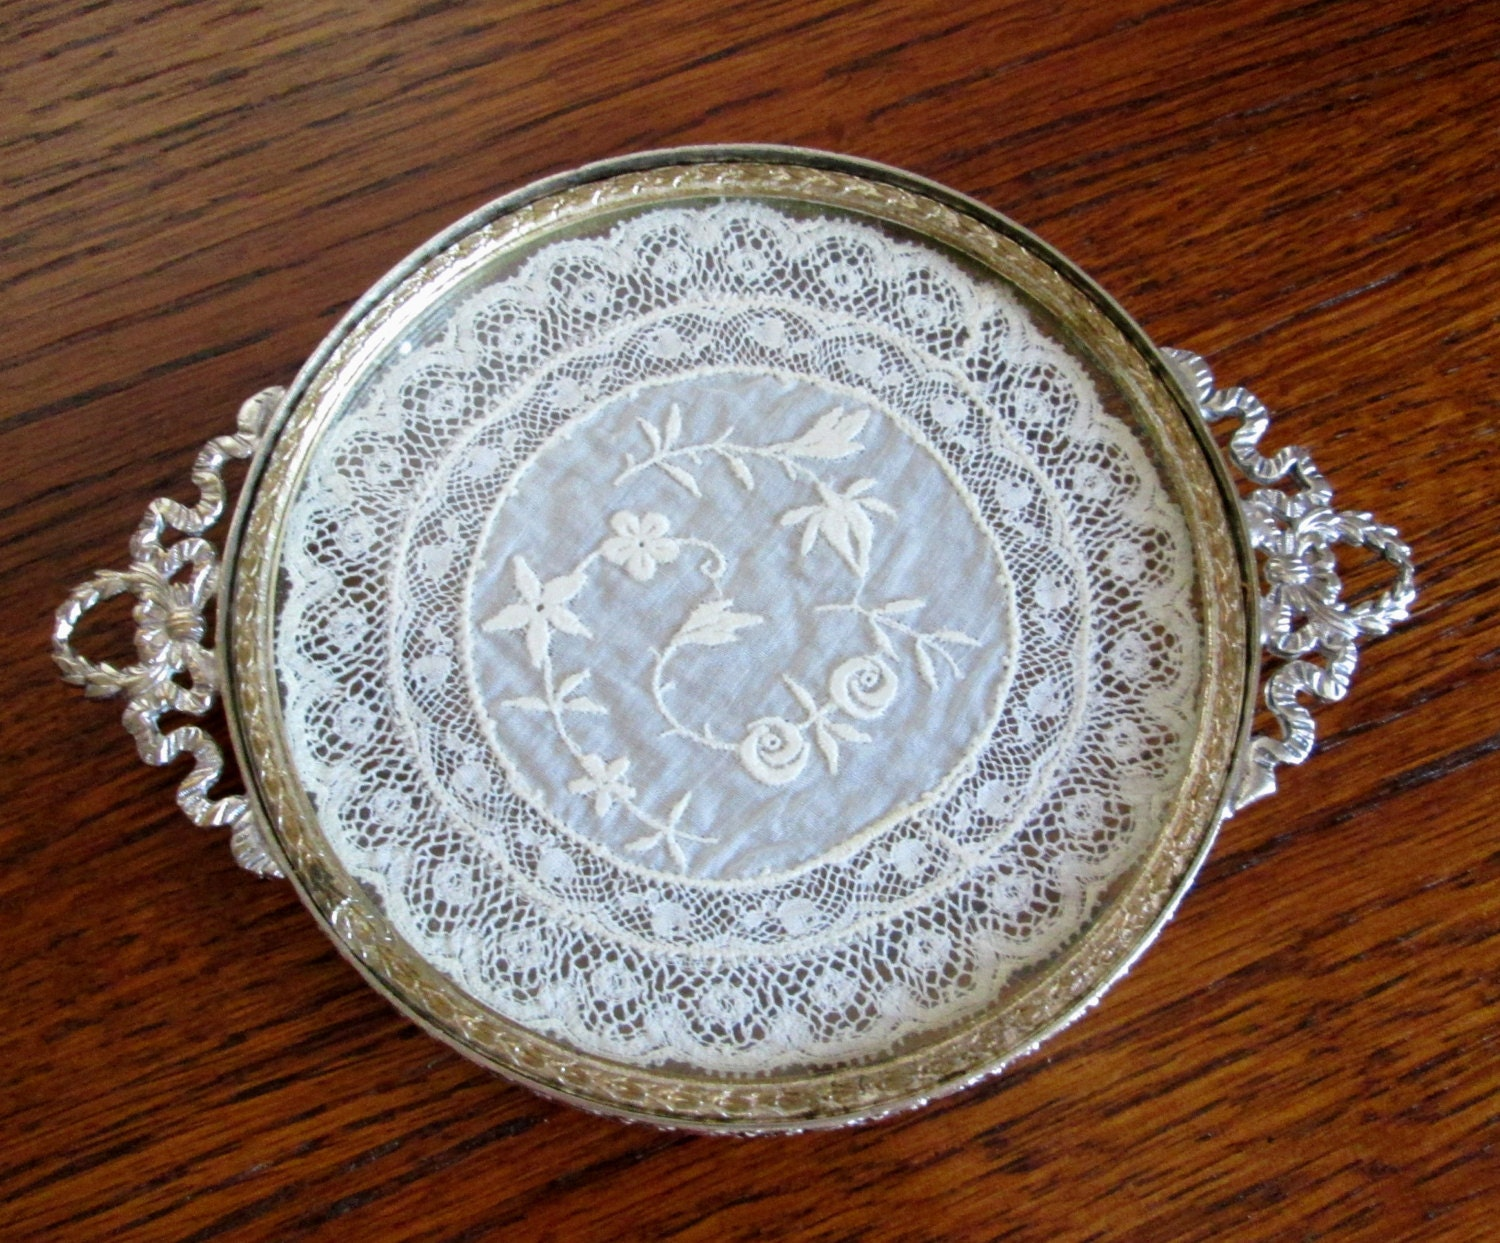 Antique vanity tray with lace insert - Like This Item